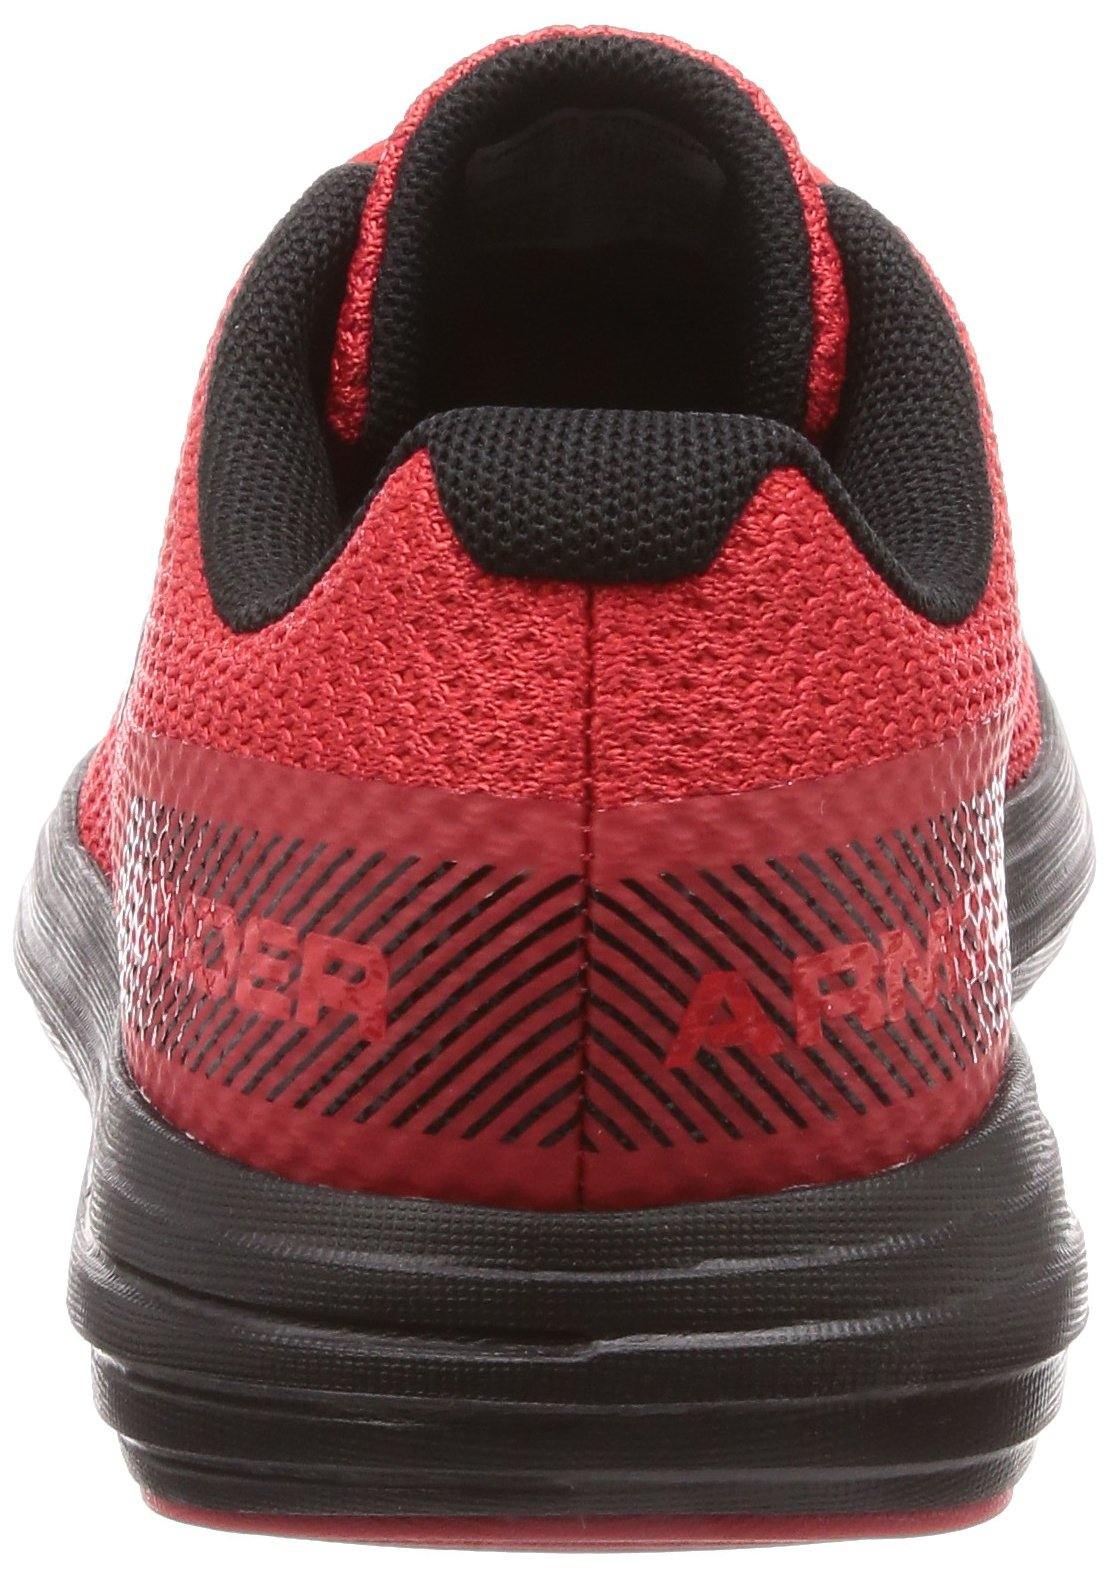 Under Armour Boys' Grade School Surge RN Sneaker, Red (600)/Black, 3.5 by Under Armour (Image #2)